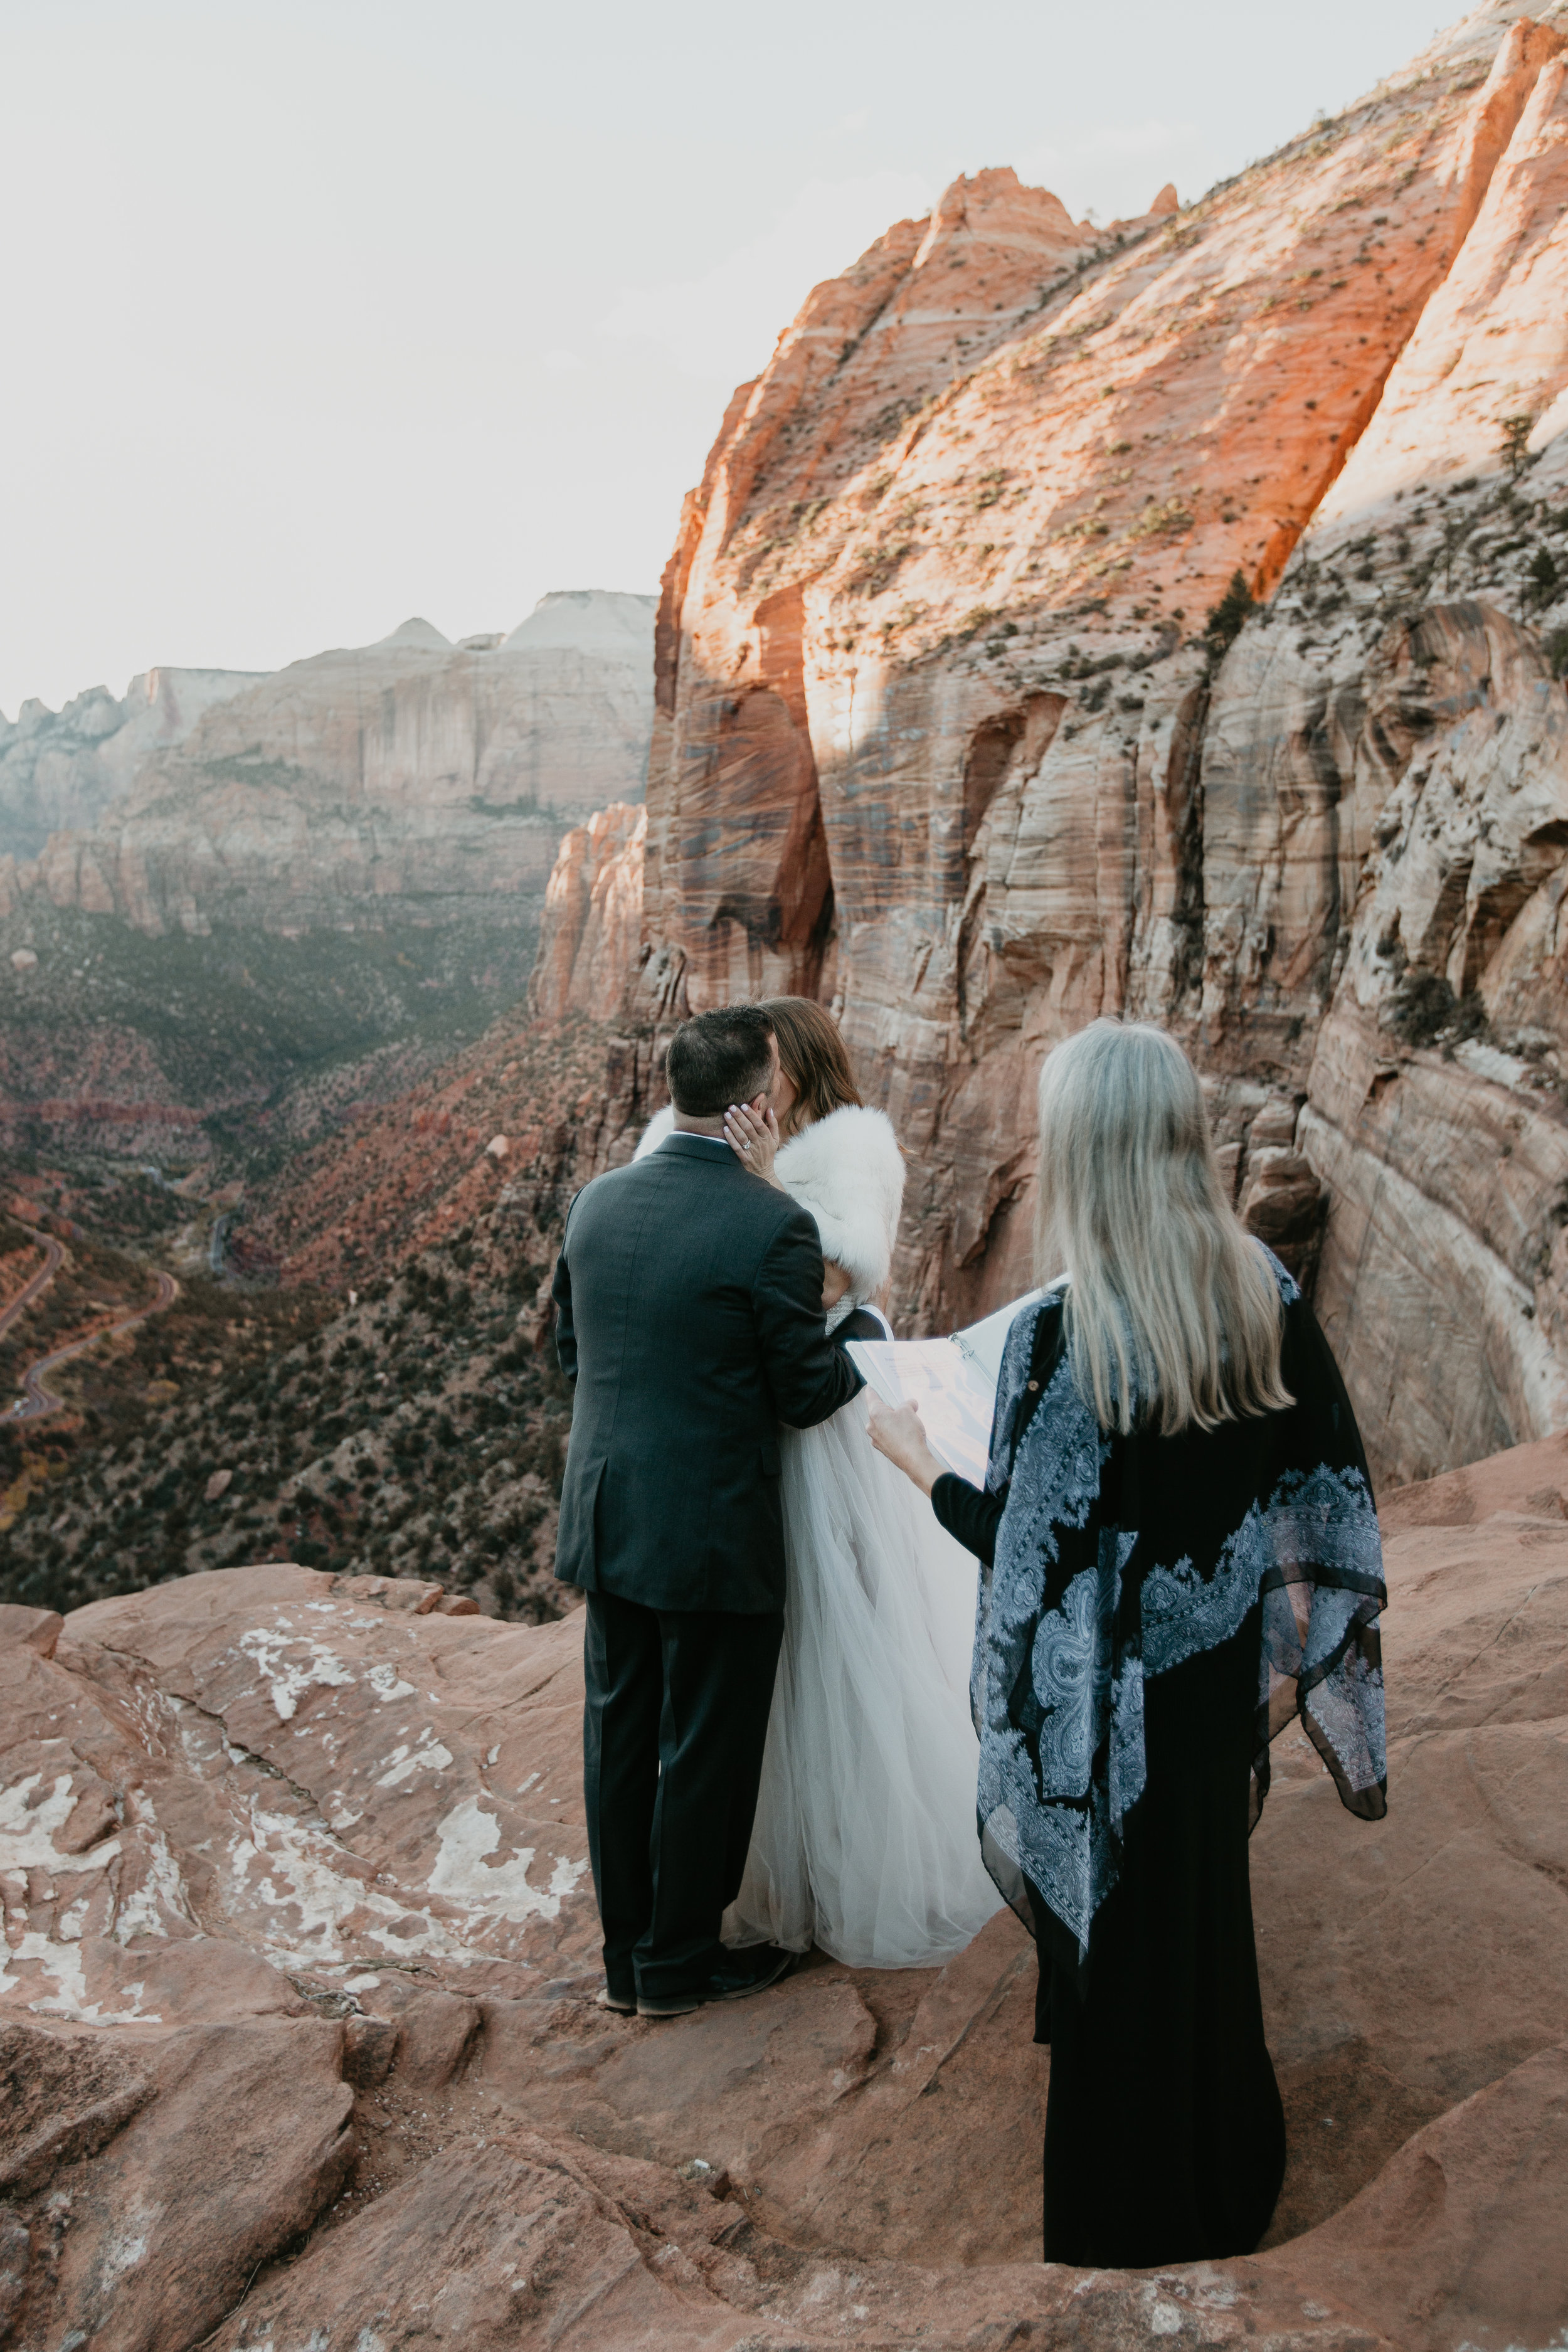 nicole-daacke-photography-zion-national-park-elopement-photographer-canyon-overlook-trail-elope-hiking-adventure-wedding-photos-fall-utah-red-rock-canyon-stgeorge-eloping-photographer-61.jpg